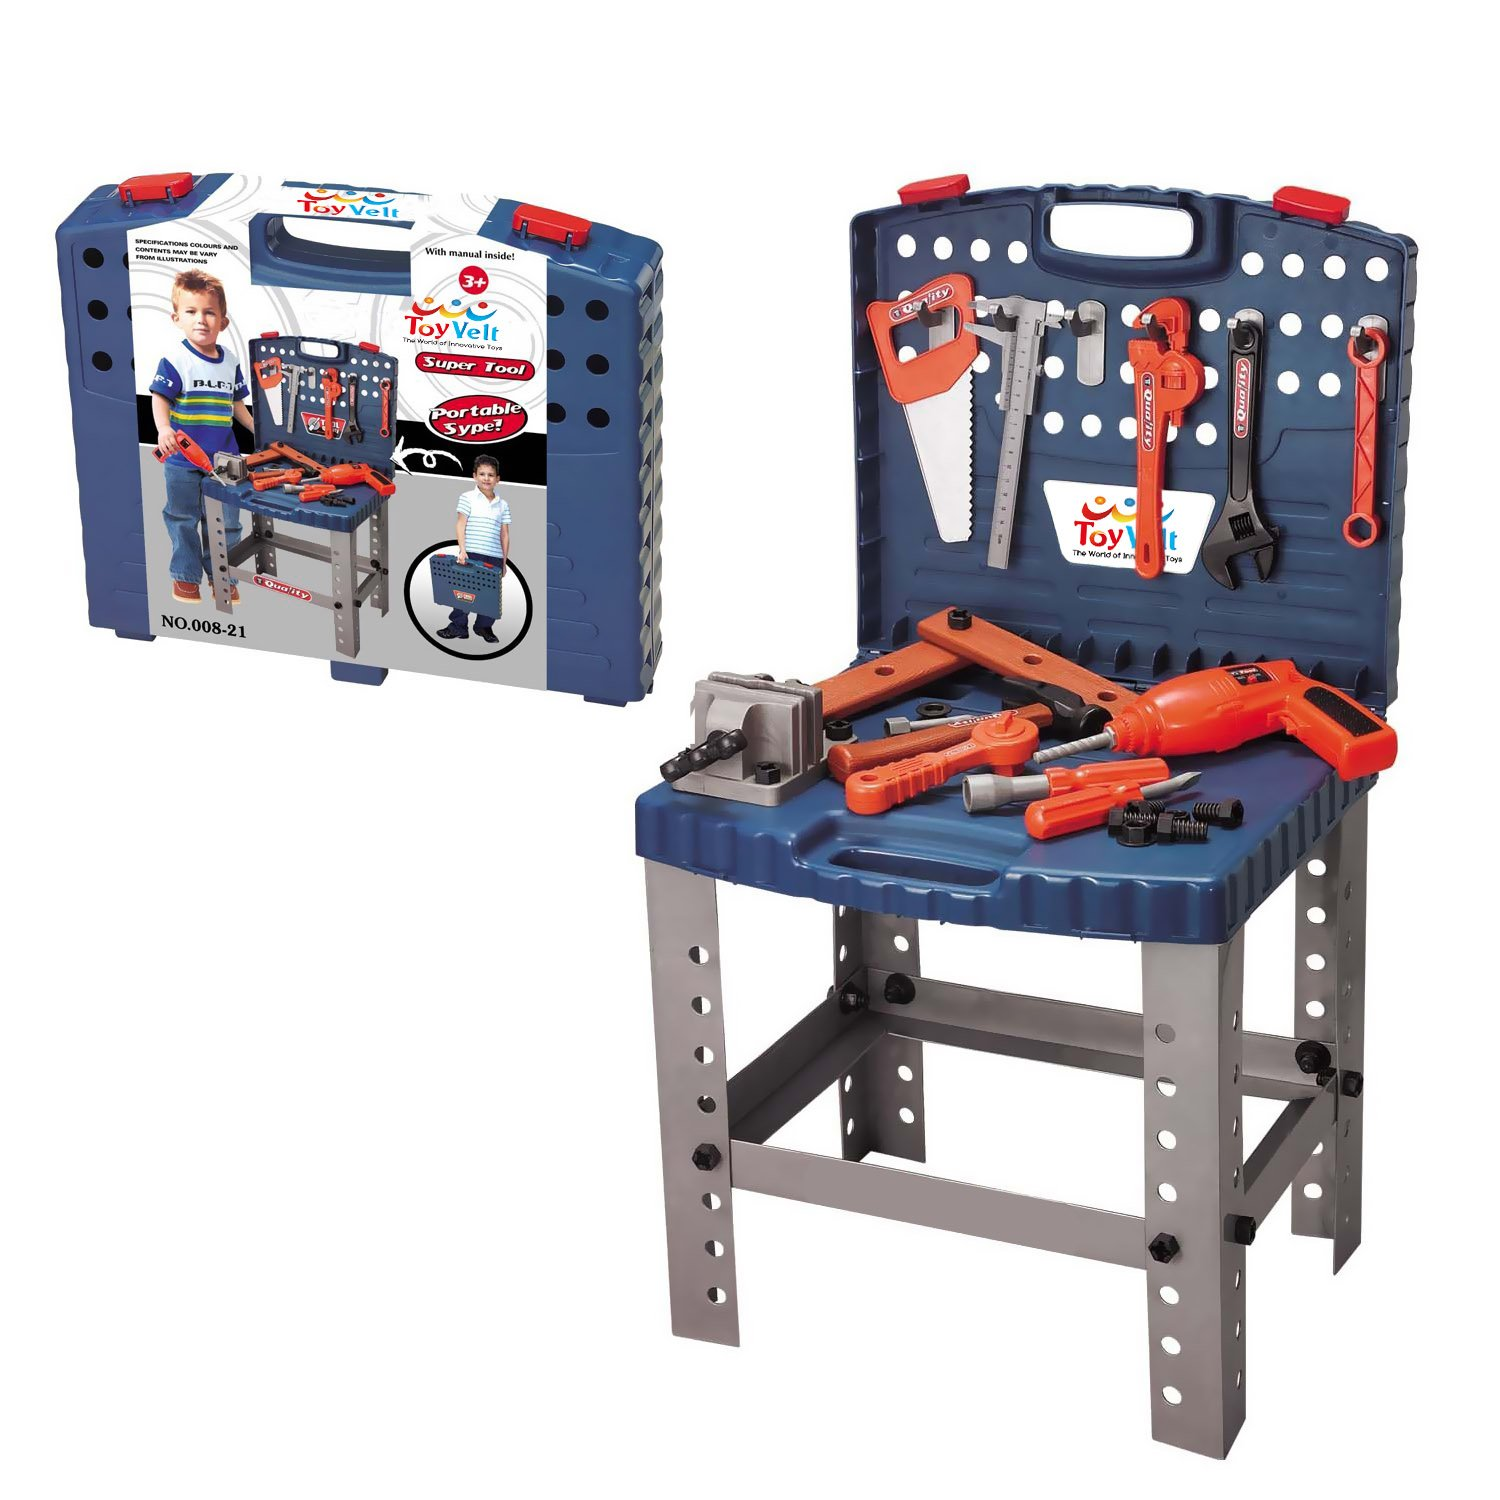 68 Piece Workbench W Realistic Tools & ELECTRIC DRILL for Construction Workshop Tool Bench